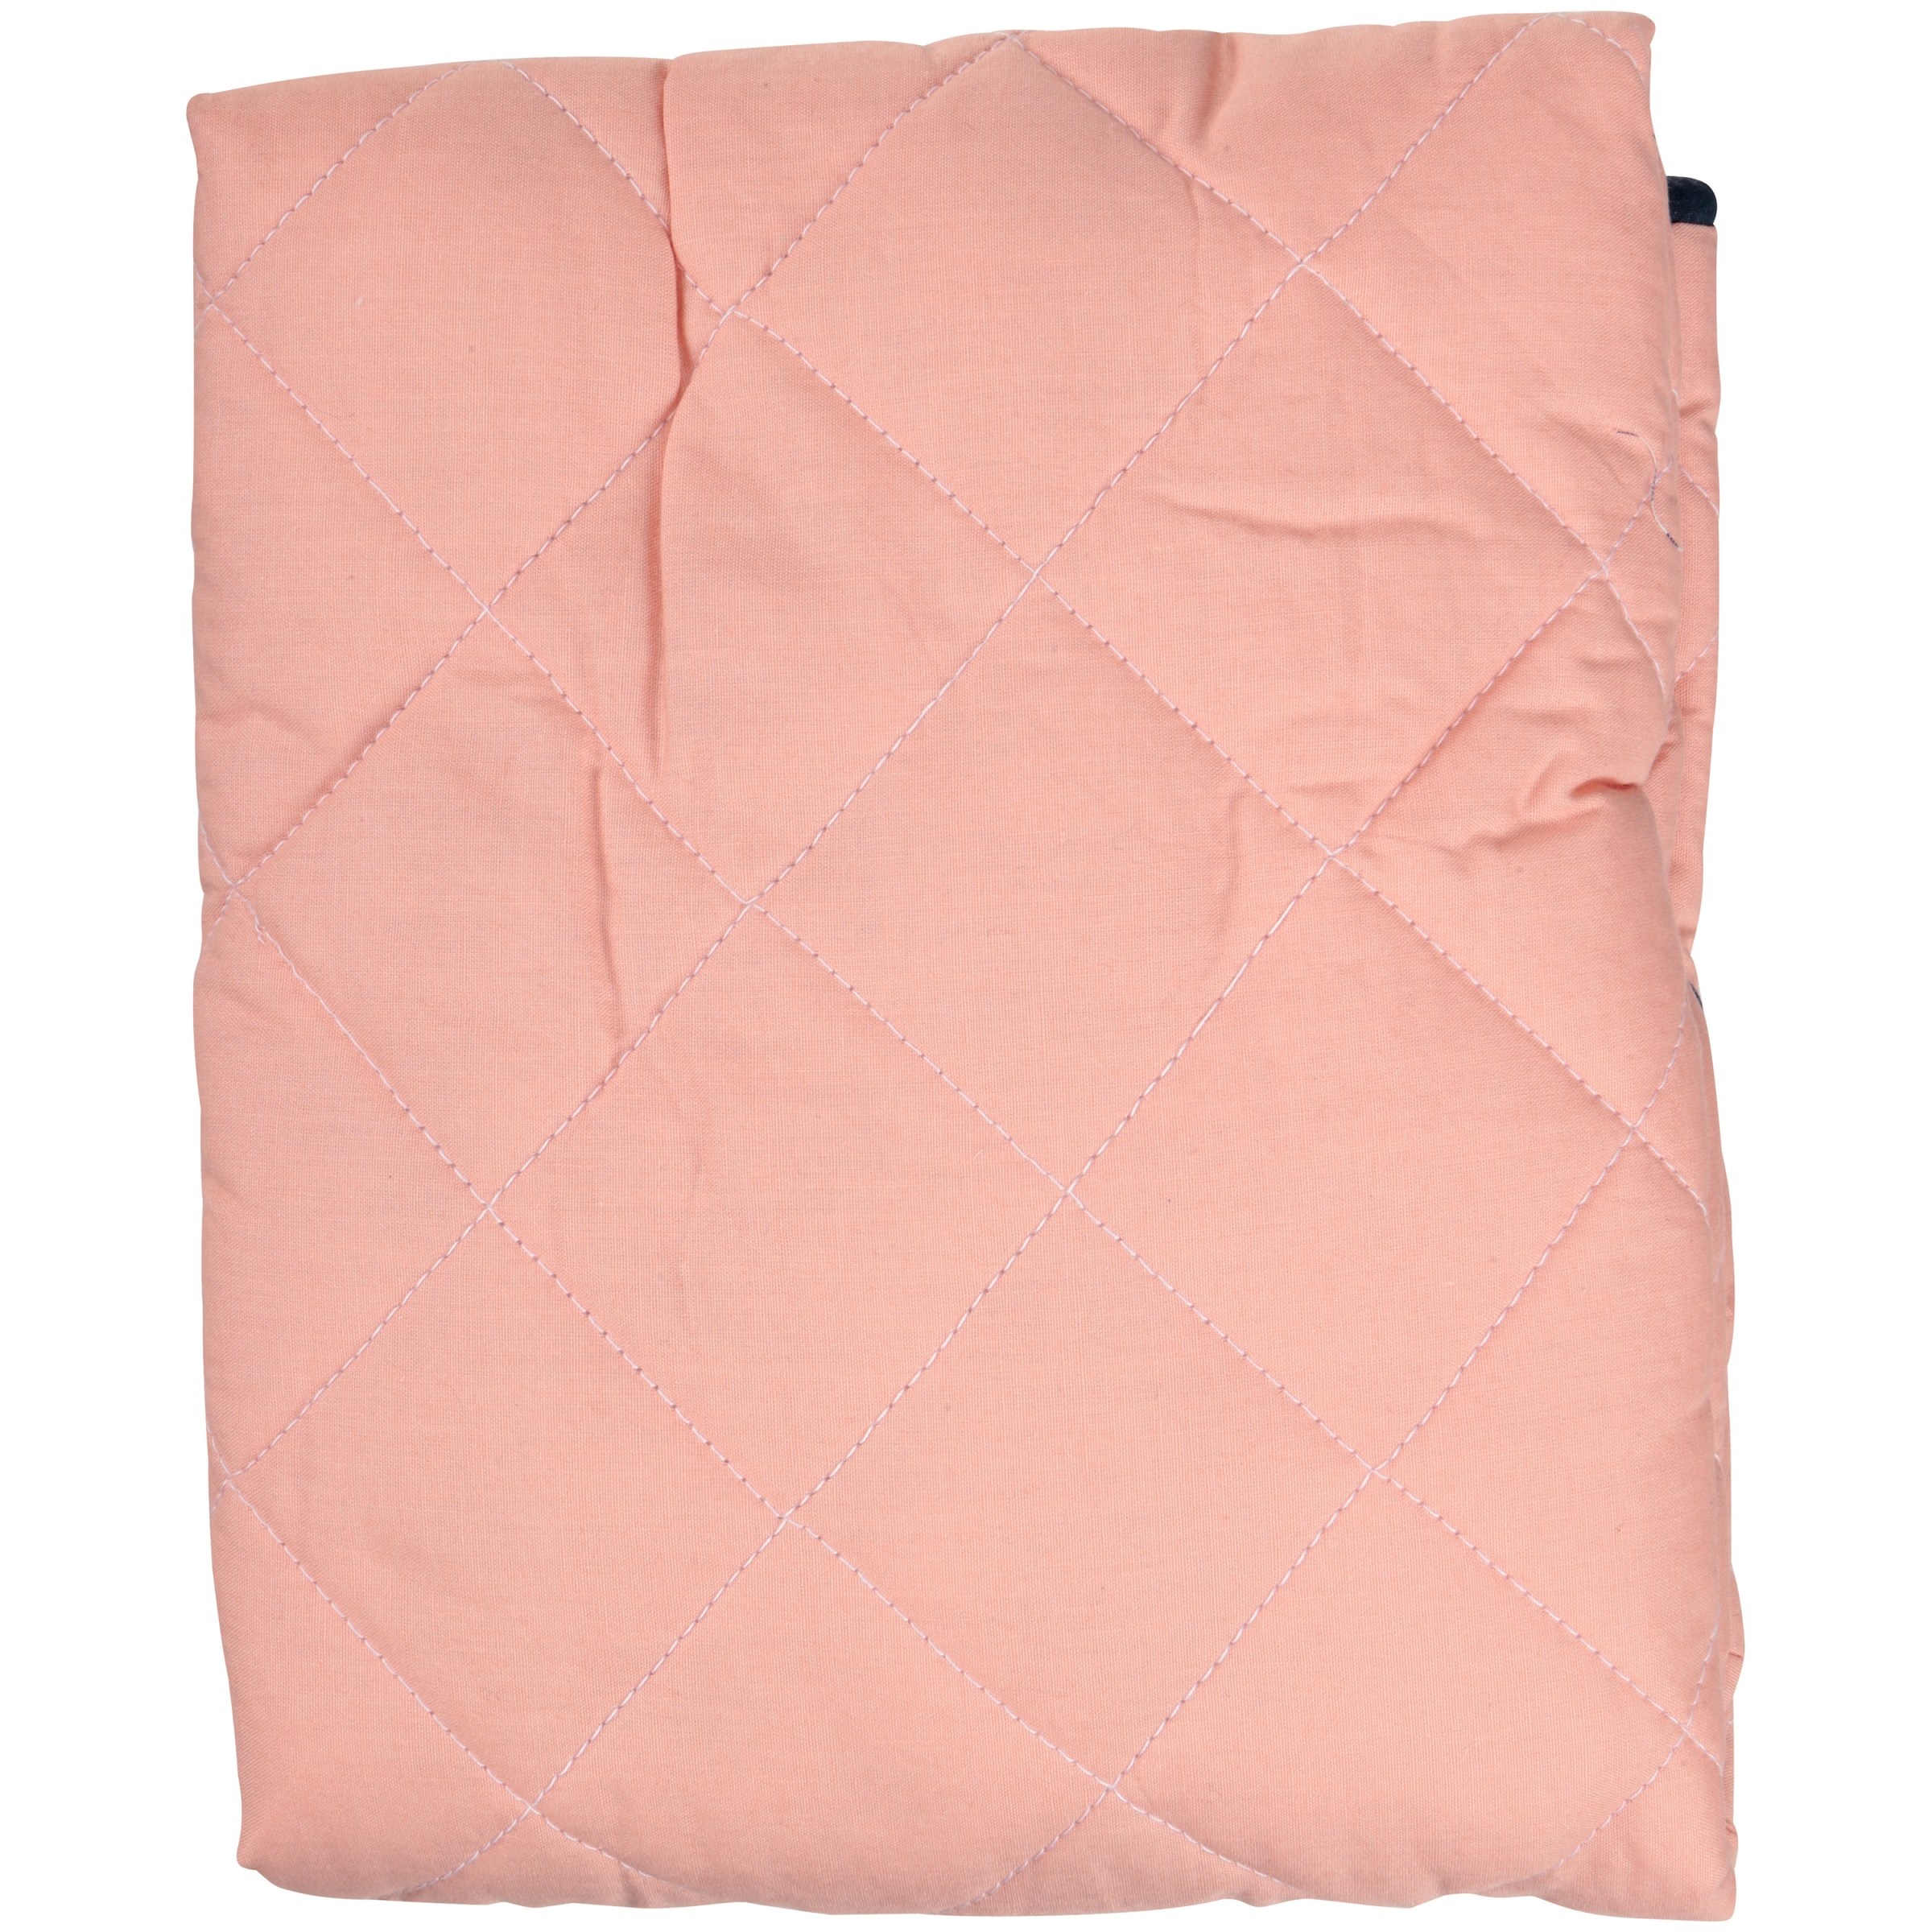 Bacati Emma Aztec Solid Coral/Navy Quilted Changing Pad Cover